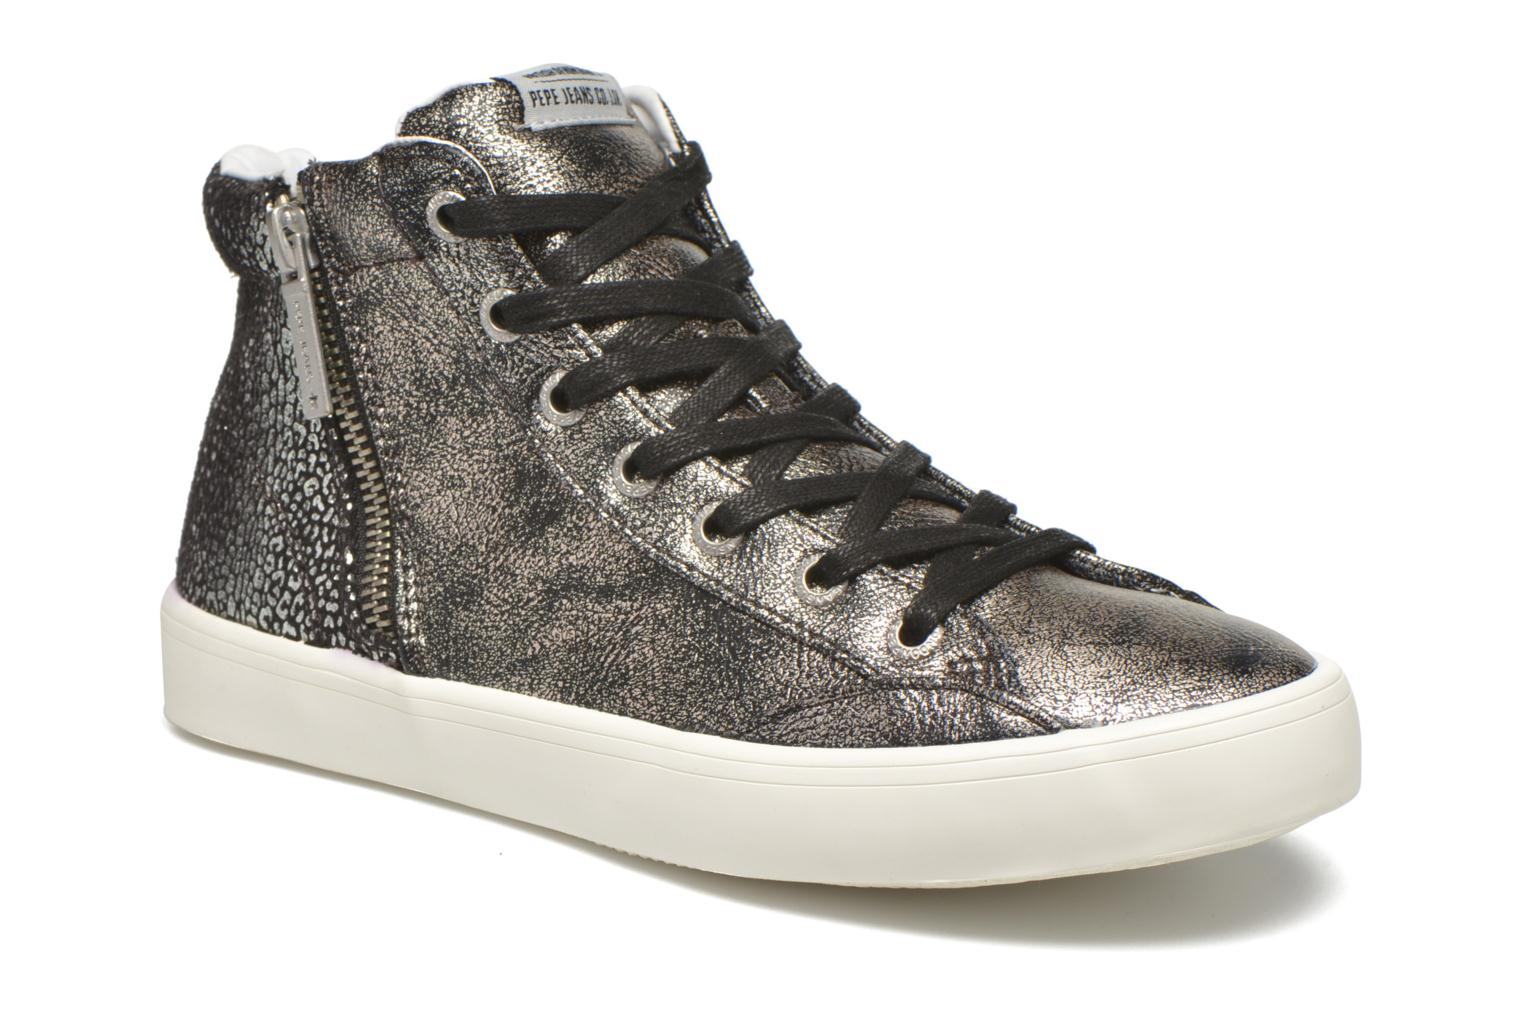 Sneakers Clinton Break Metal by Pepe jeans